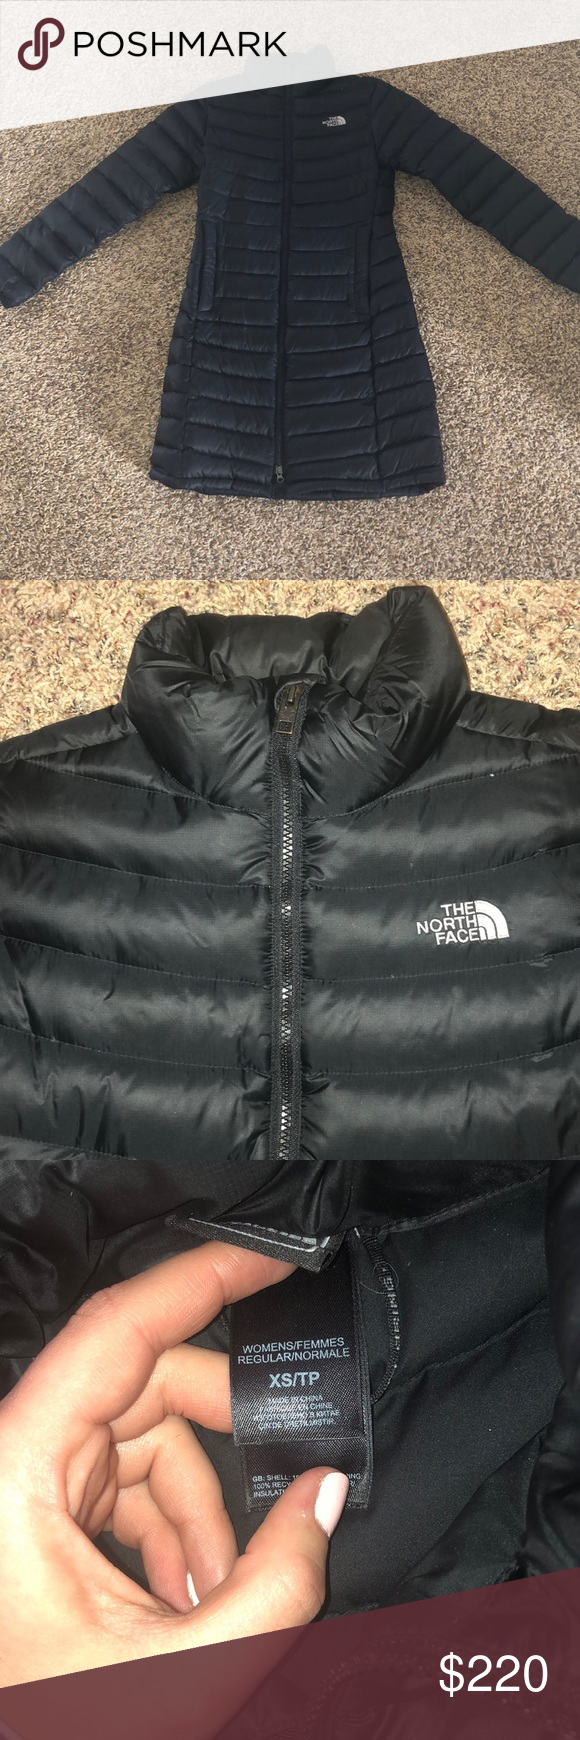 North Face Down Jacket 700 Down Fill Down Jacket North Face Jacket The North Face [ 1740 x 580 Pixel ]